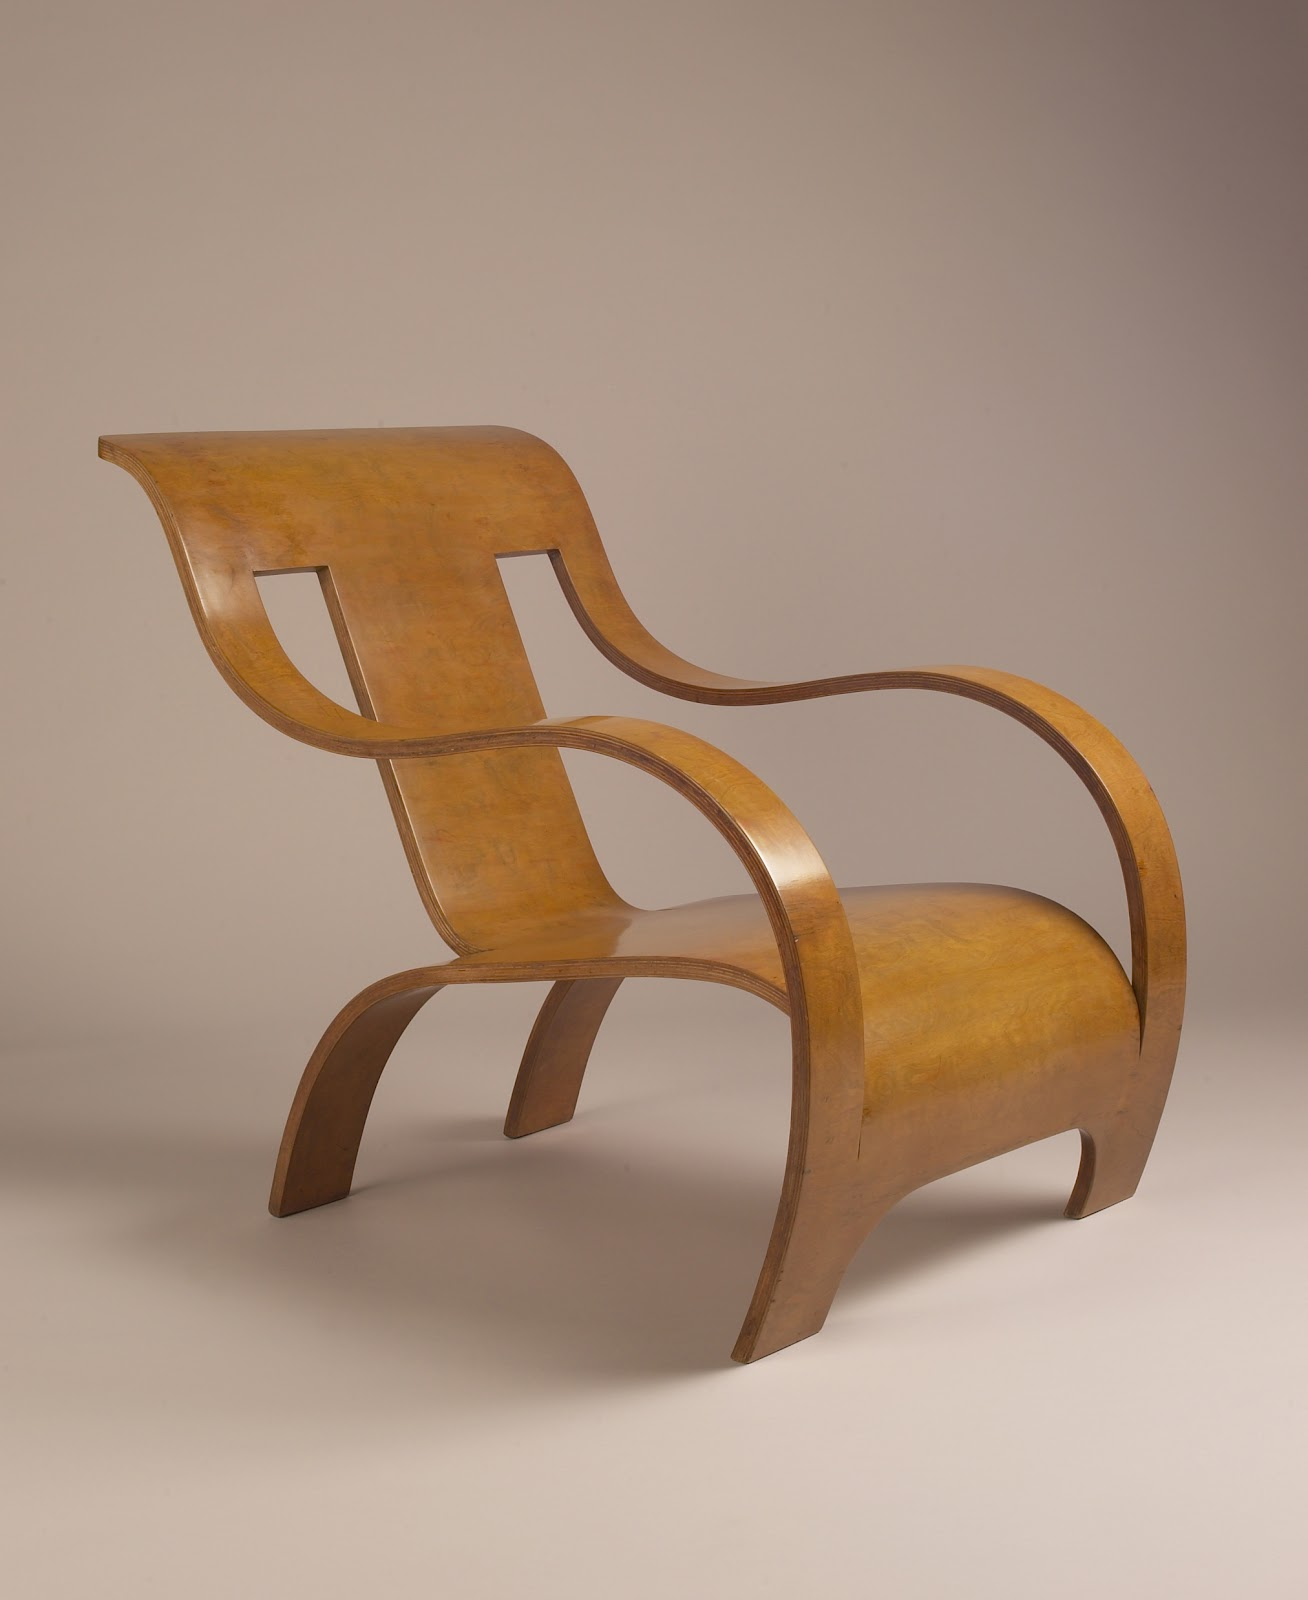 Bent Plywood Chair - Mystery ingenuity and bent plywood gerald summers armchair